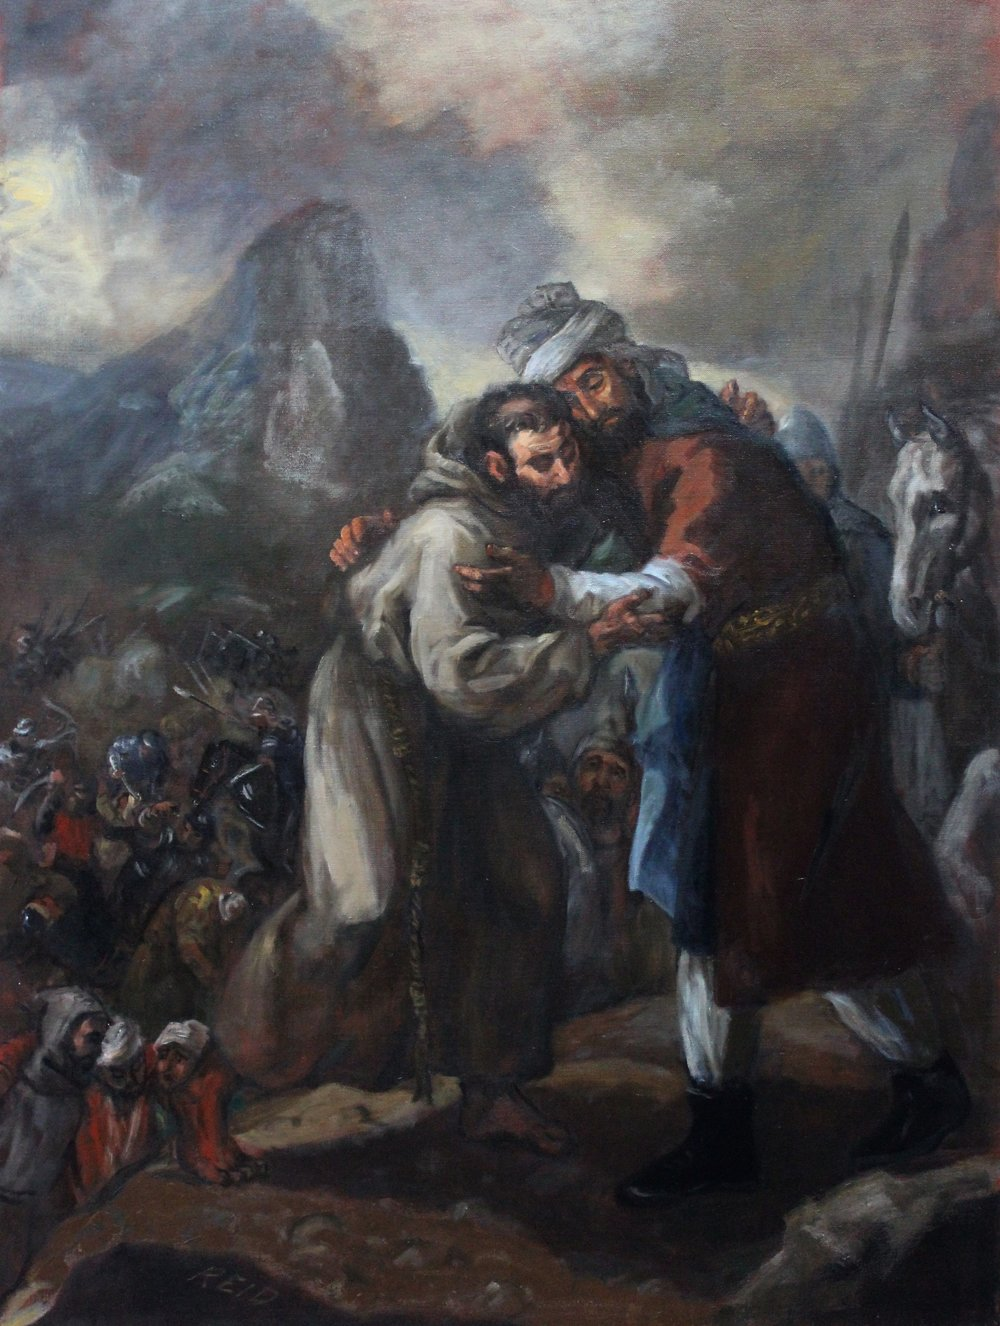 The Meeting of Saint Francis and Sultan al-Kamil